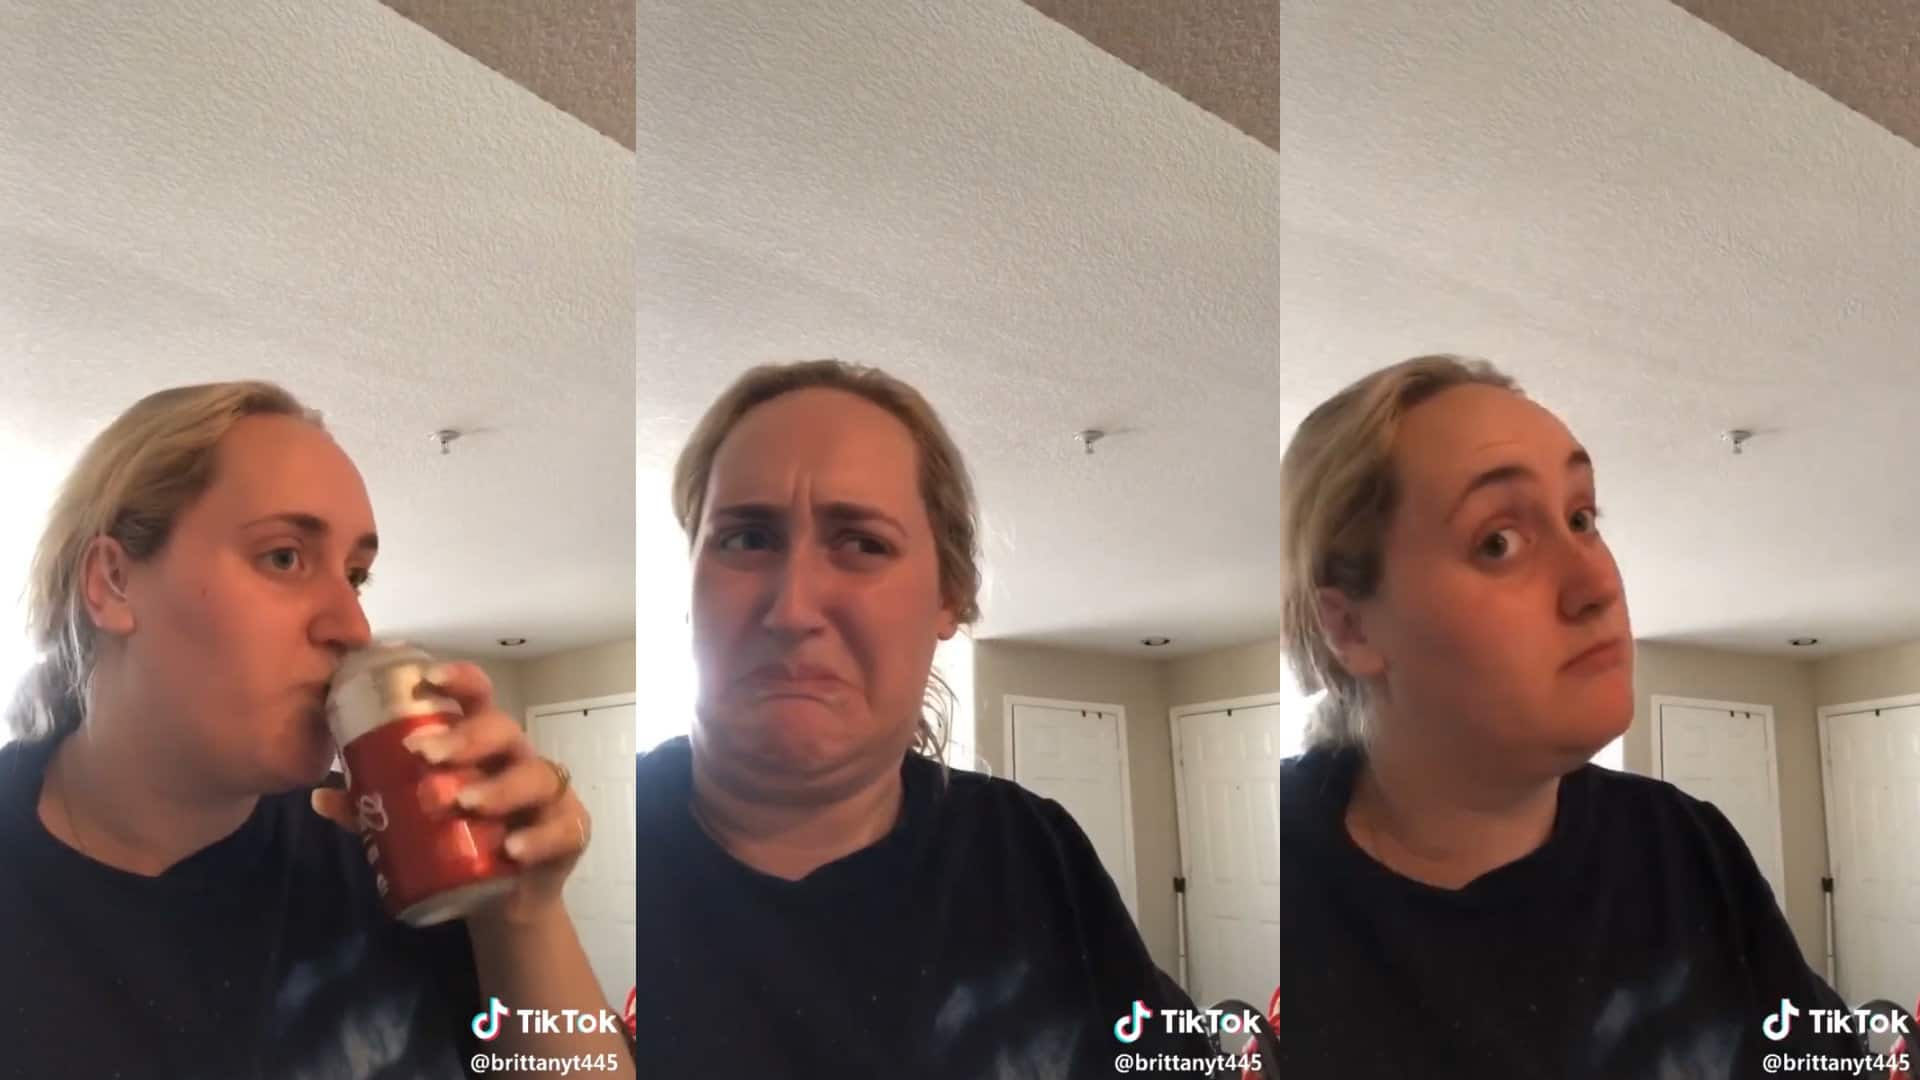 3 separate images depicting a white girl with blonde hair drinking kombucha. In the first image, she tries the drink. In the second she looks disgusted, and in the third she looks pleasantly surprised.